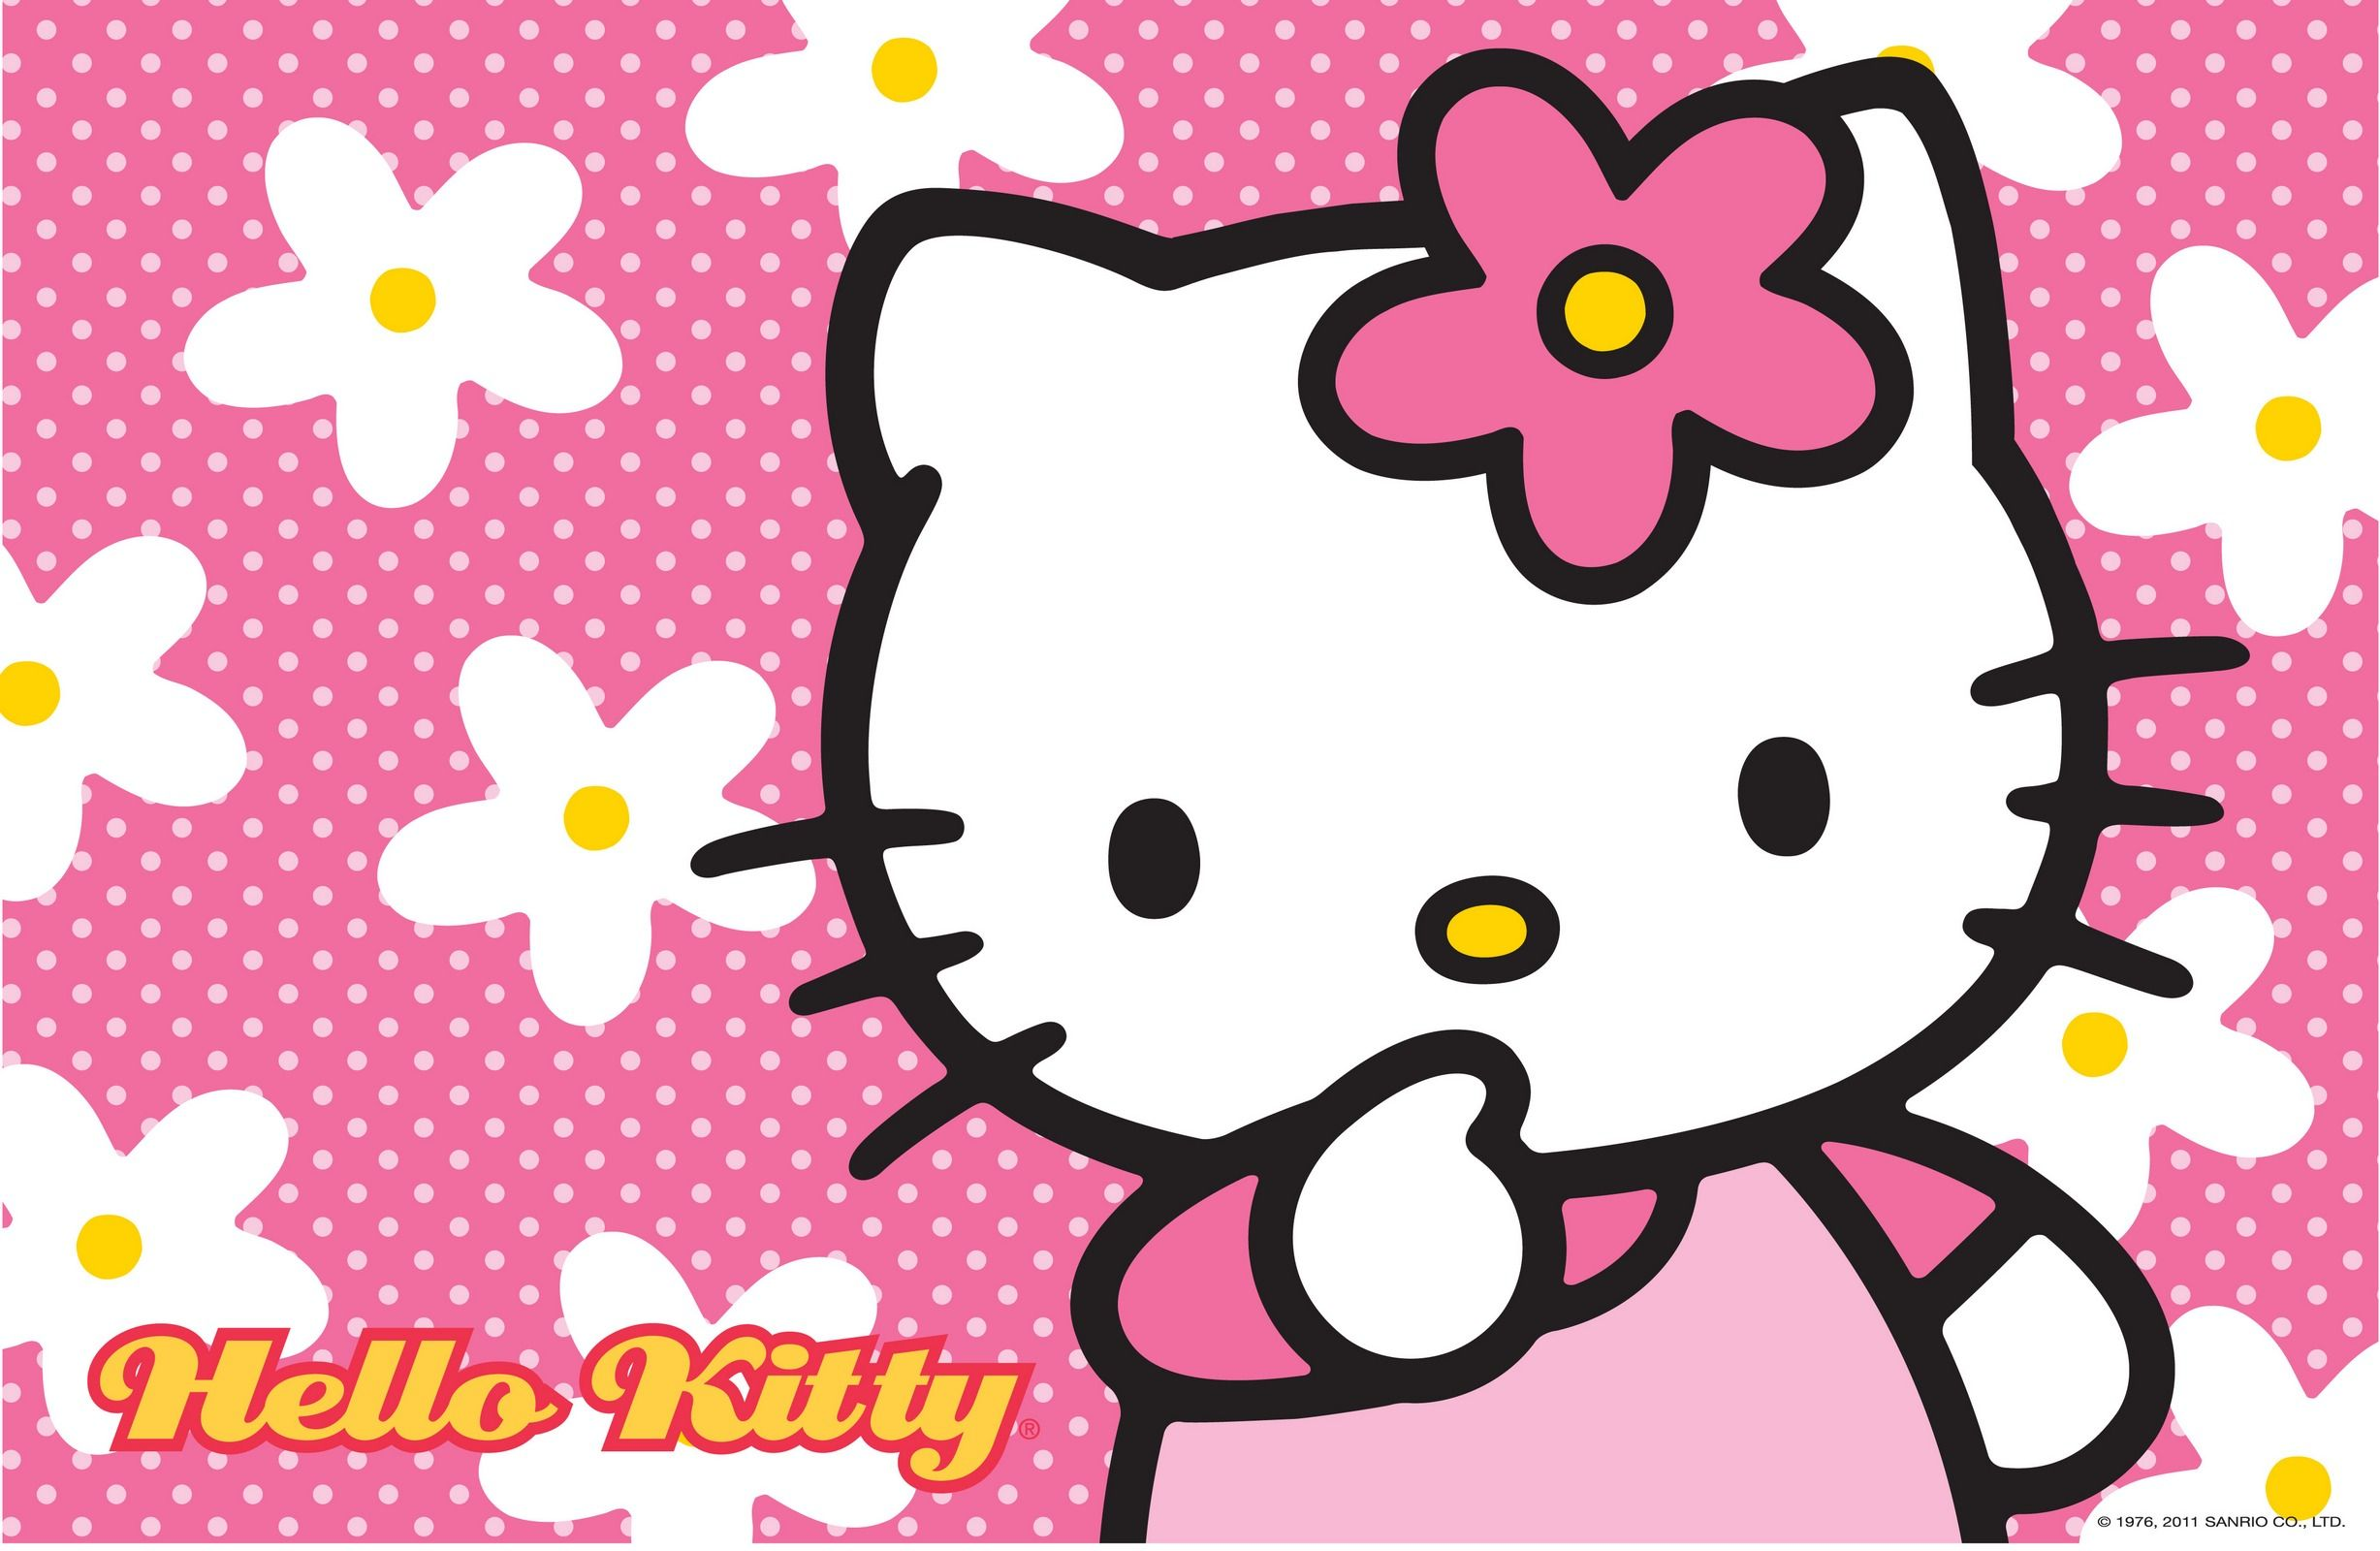 Hello kitty images hello kitty hd wallpaper and background - Hello Kitty Wallpaper With Floral Pink Background